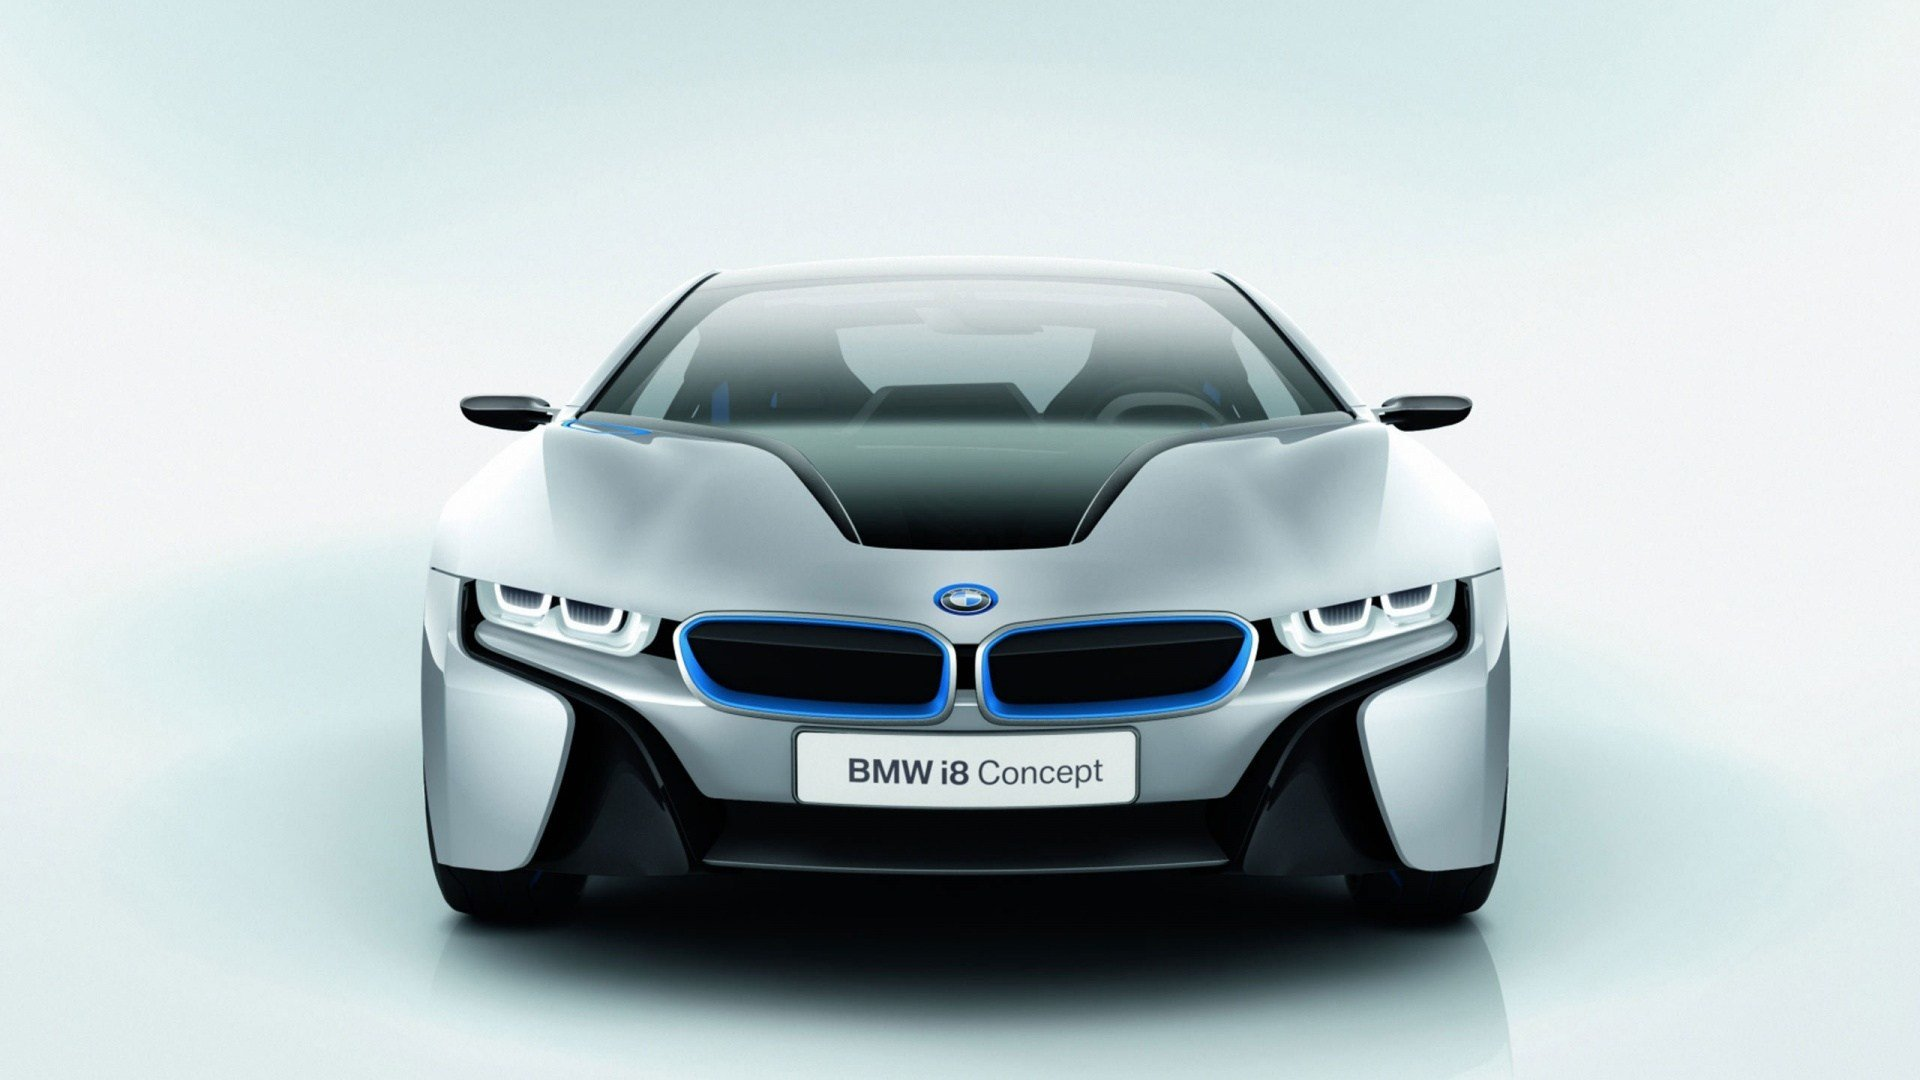 Latest Cool Bmw Wallpapers Wallpapersafari Free Download